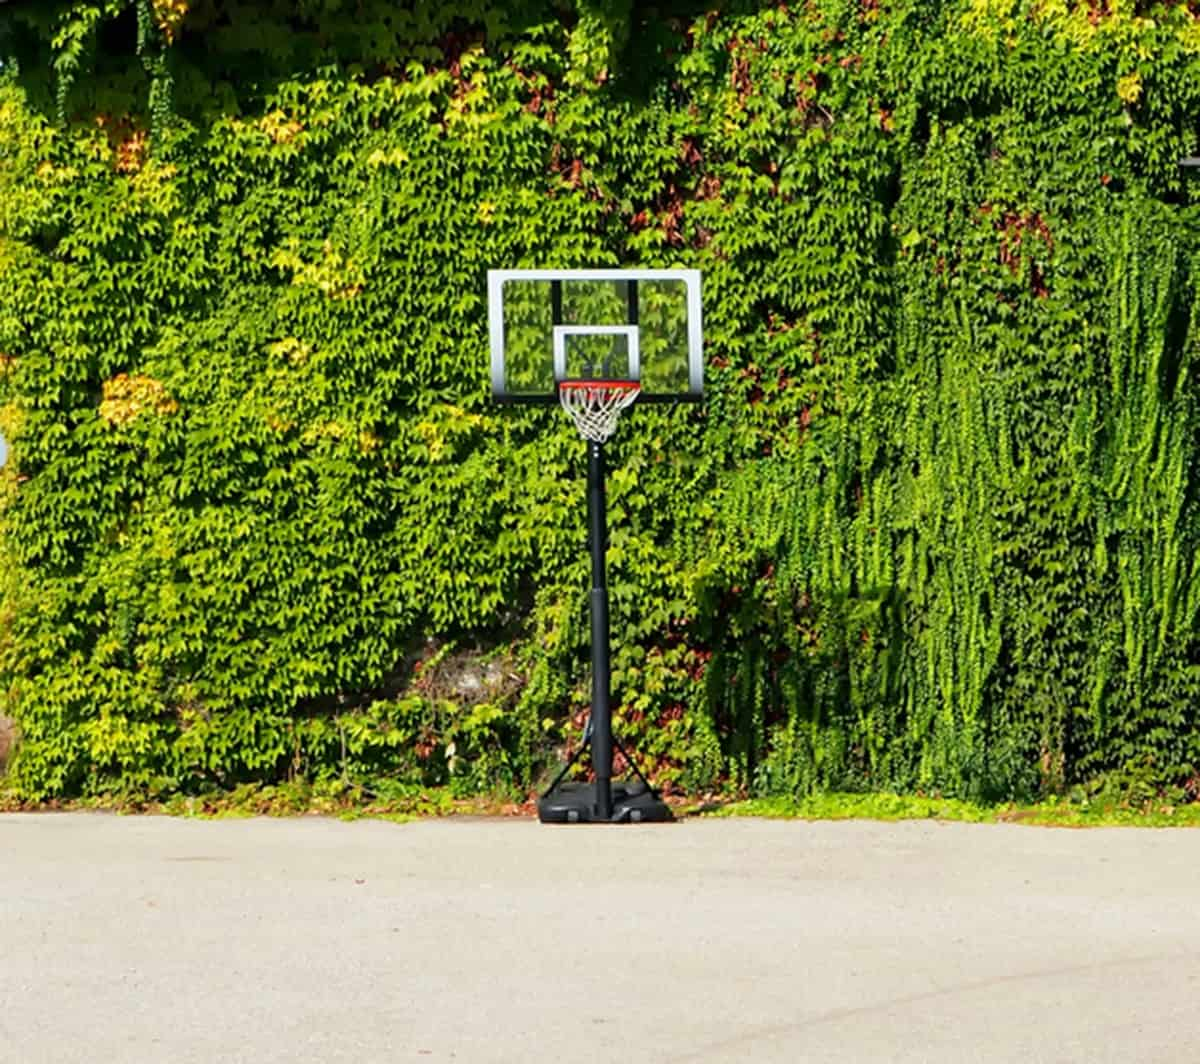 10 Pro Portable Basketball Hoops To Keep You Dunking In 2018